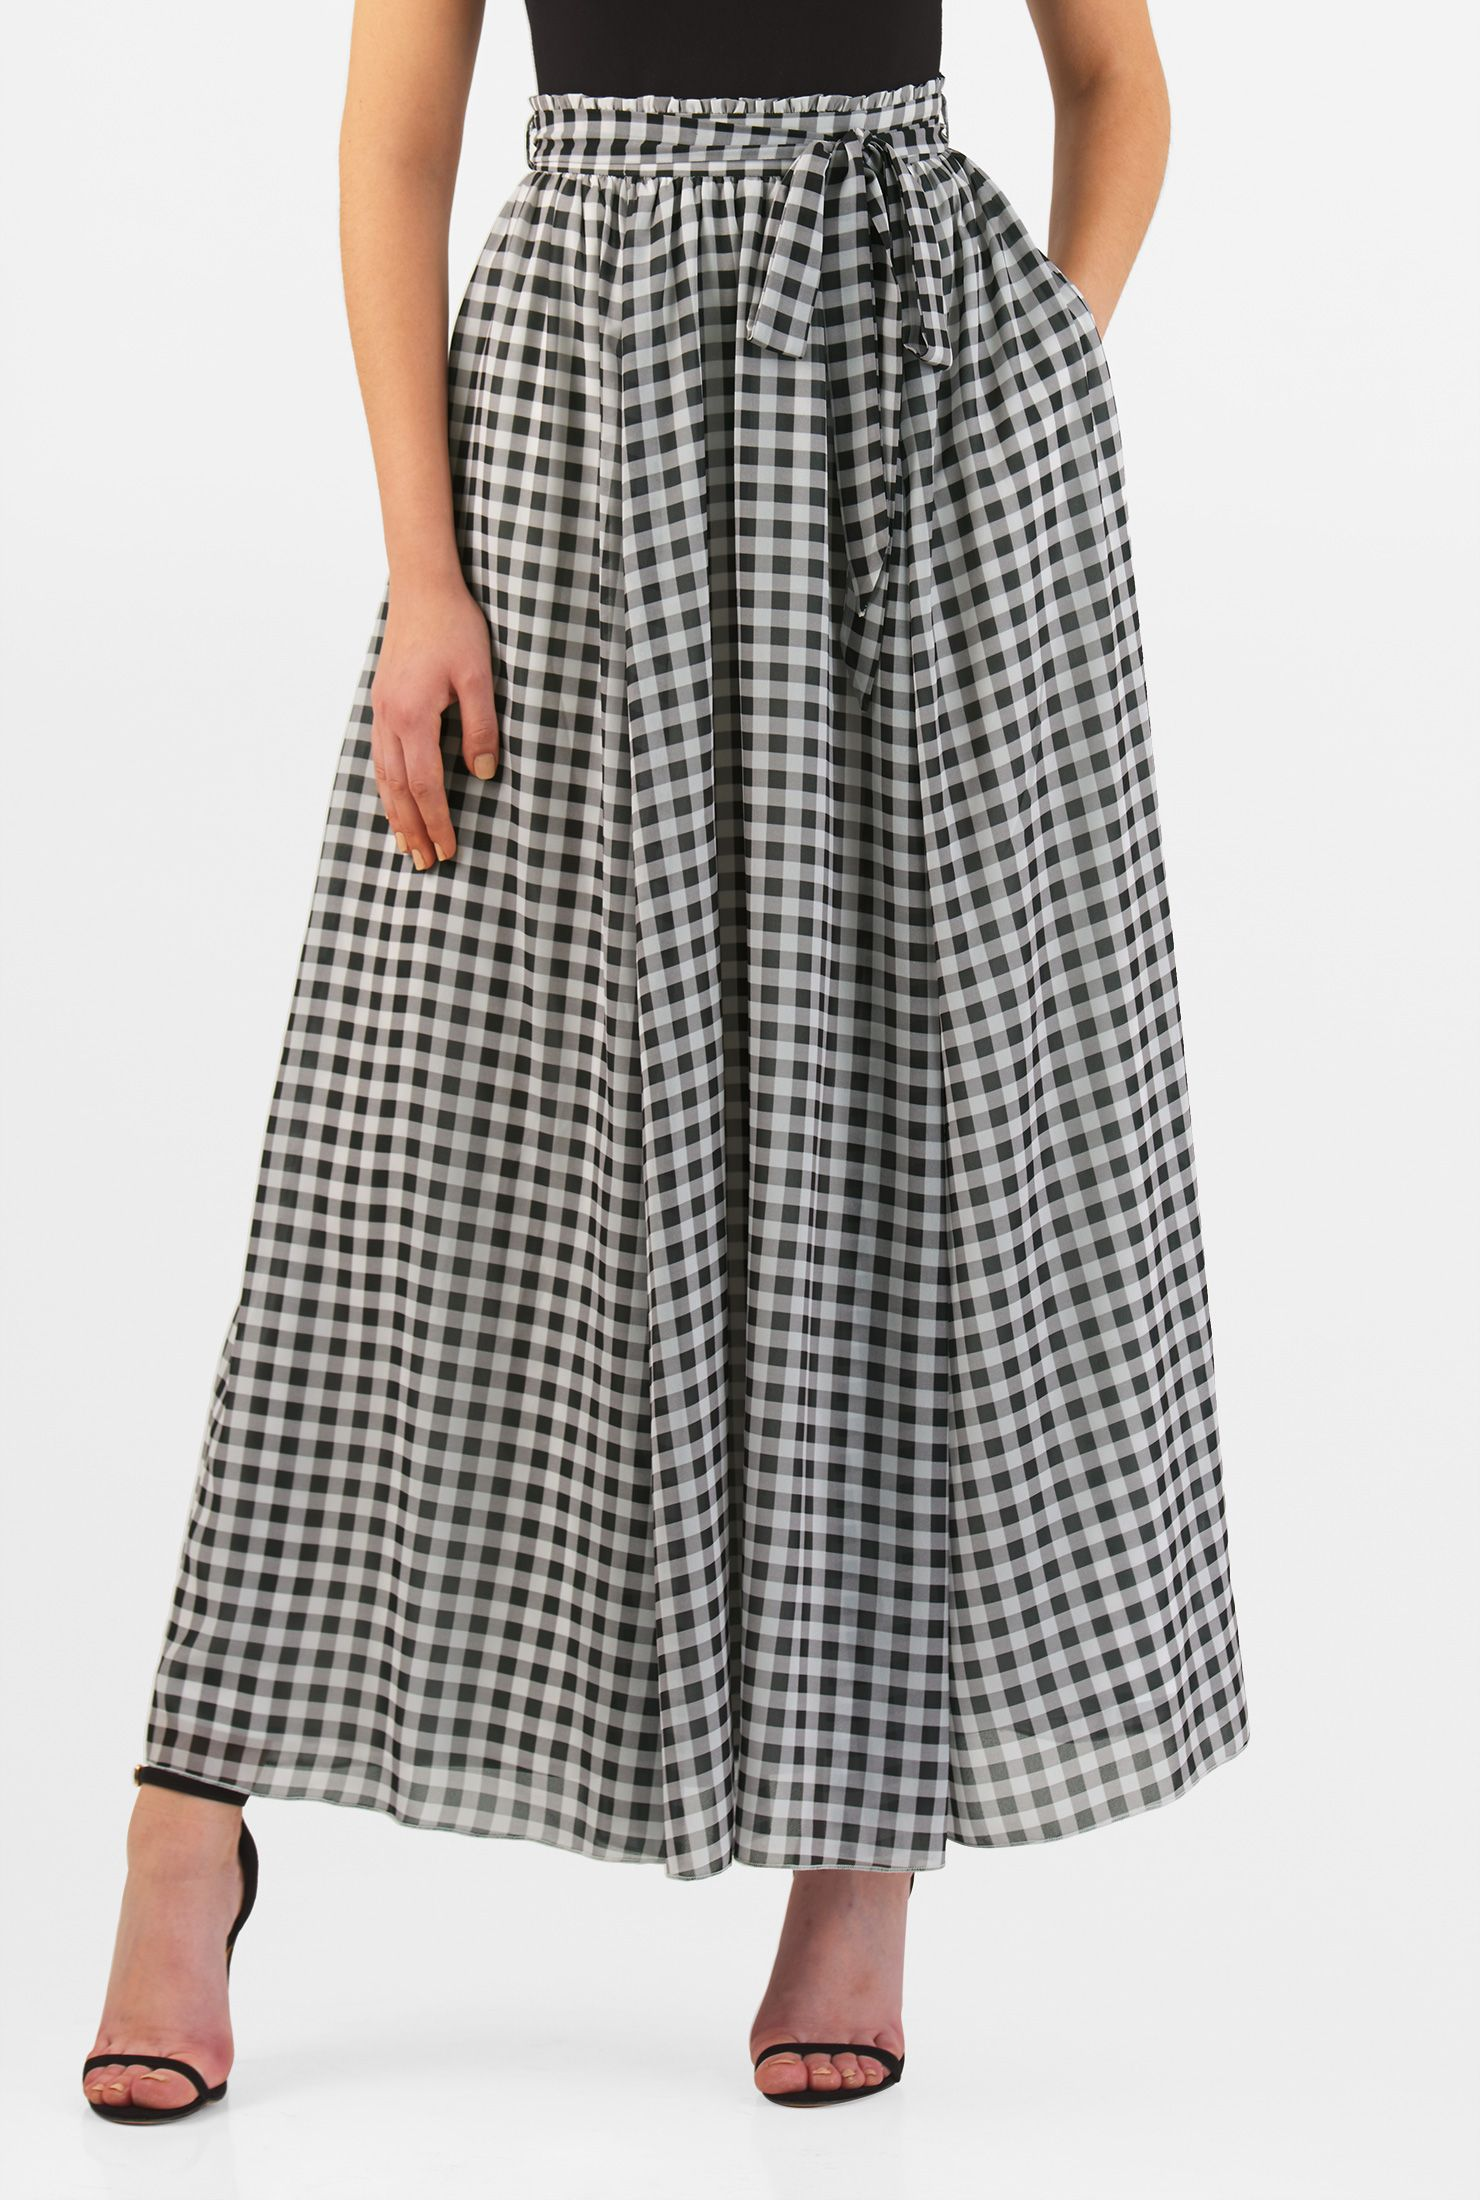 a6a01bee5ab A removable sash tie belt beautifully cinches in the paperbag waist of our  feminine gingham check print georgette skirt.